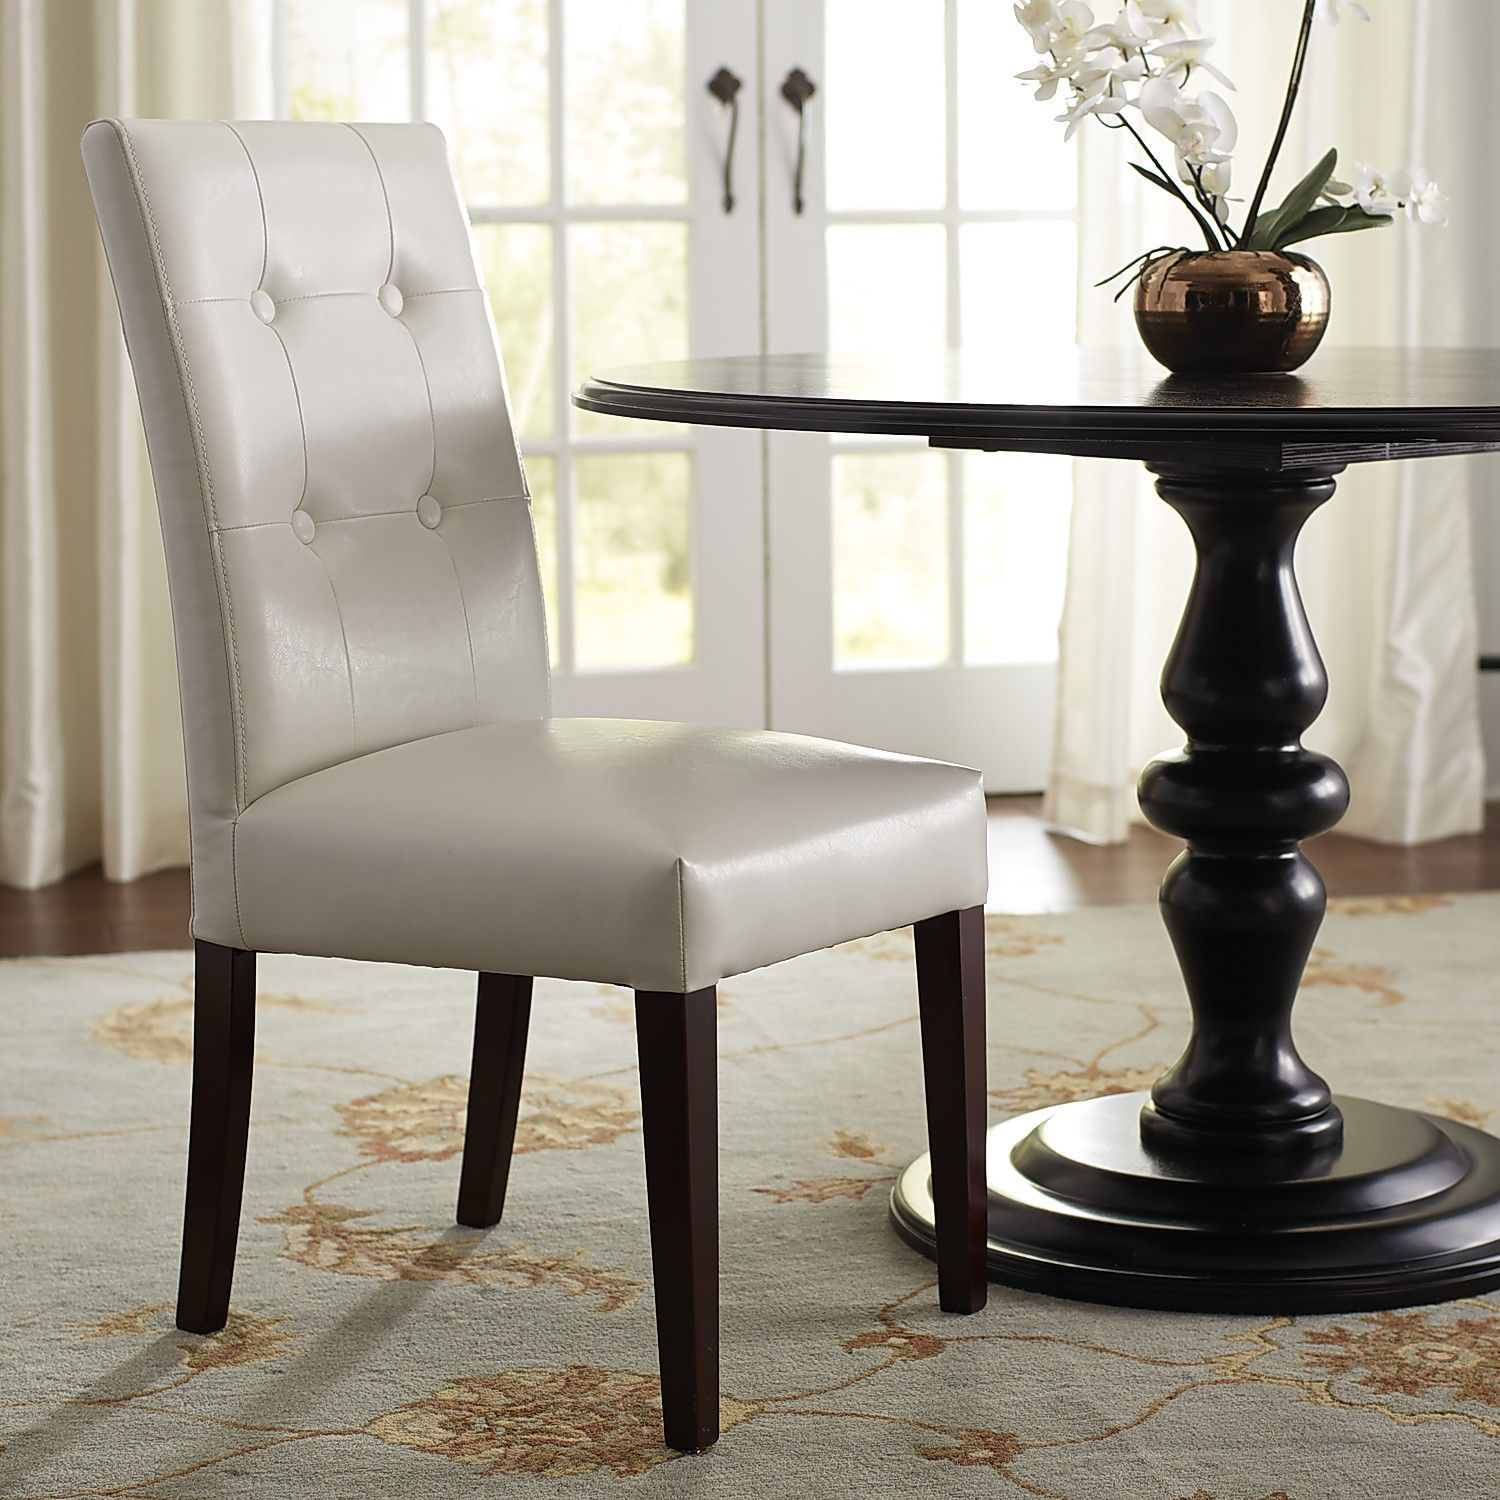 White Leather Weave Dining Chair Leather Dining Room Chairs Woven Dining Chairs Leather Dining Room